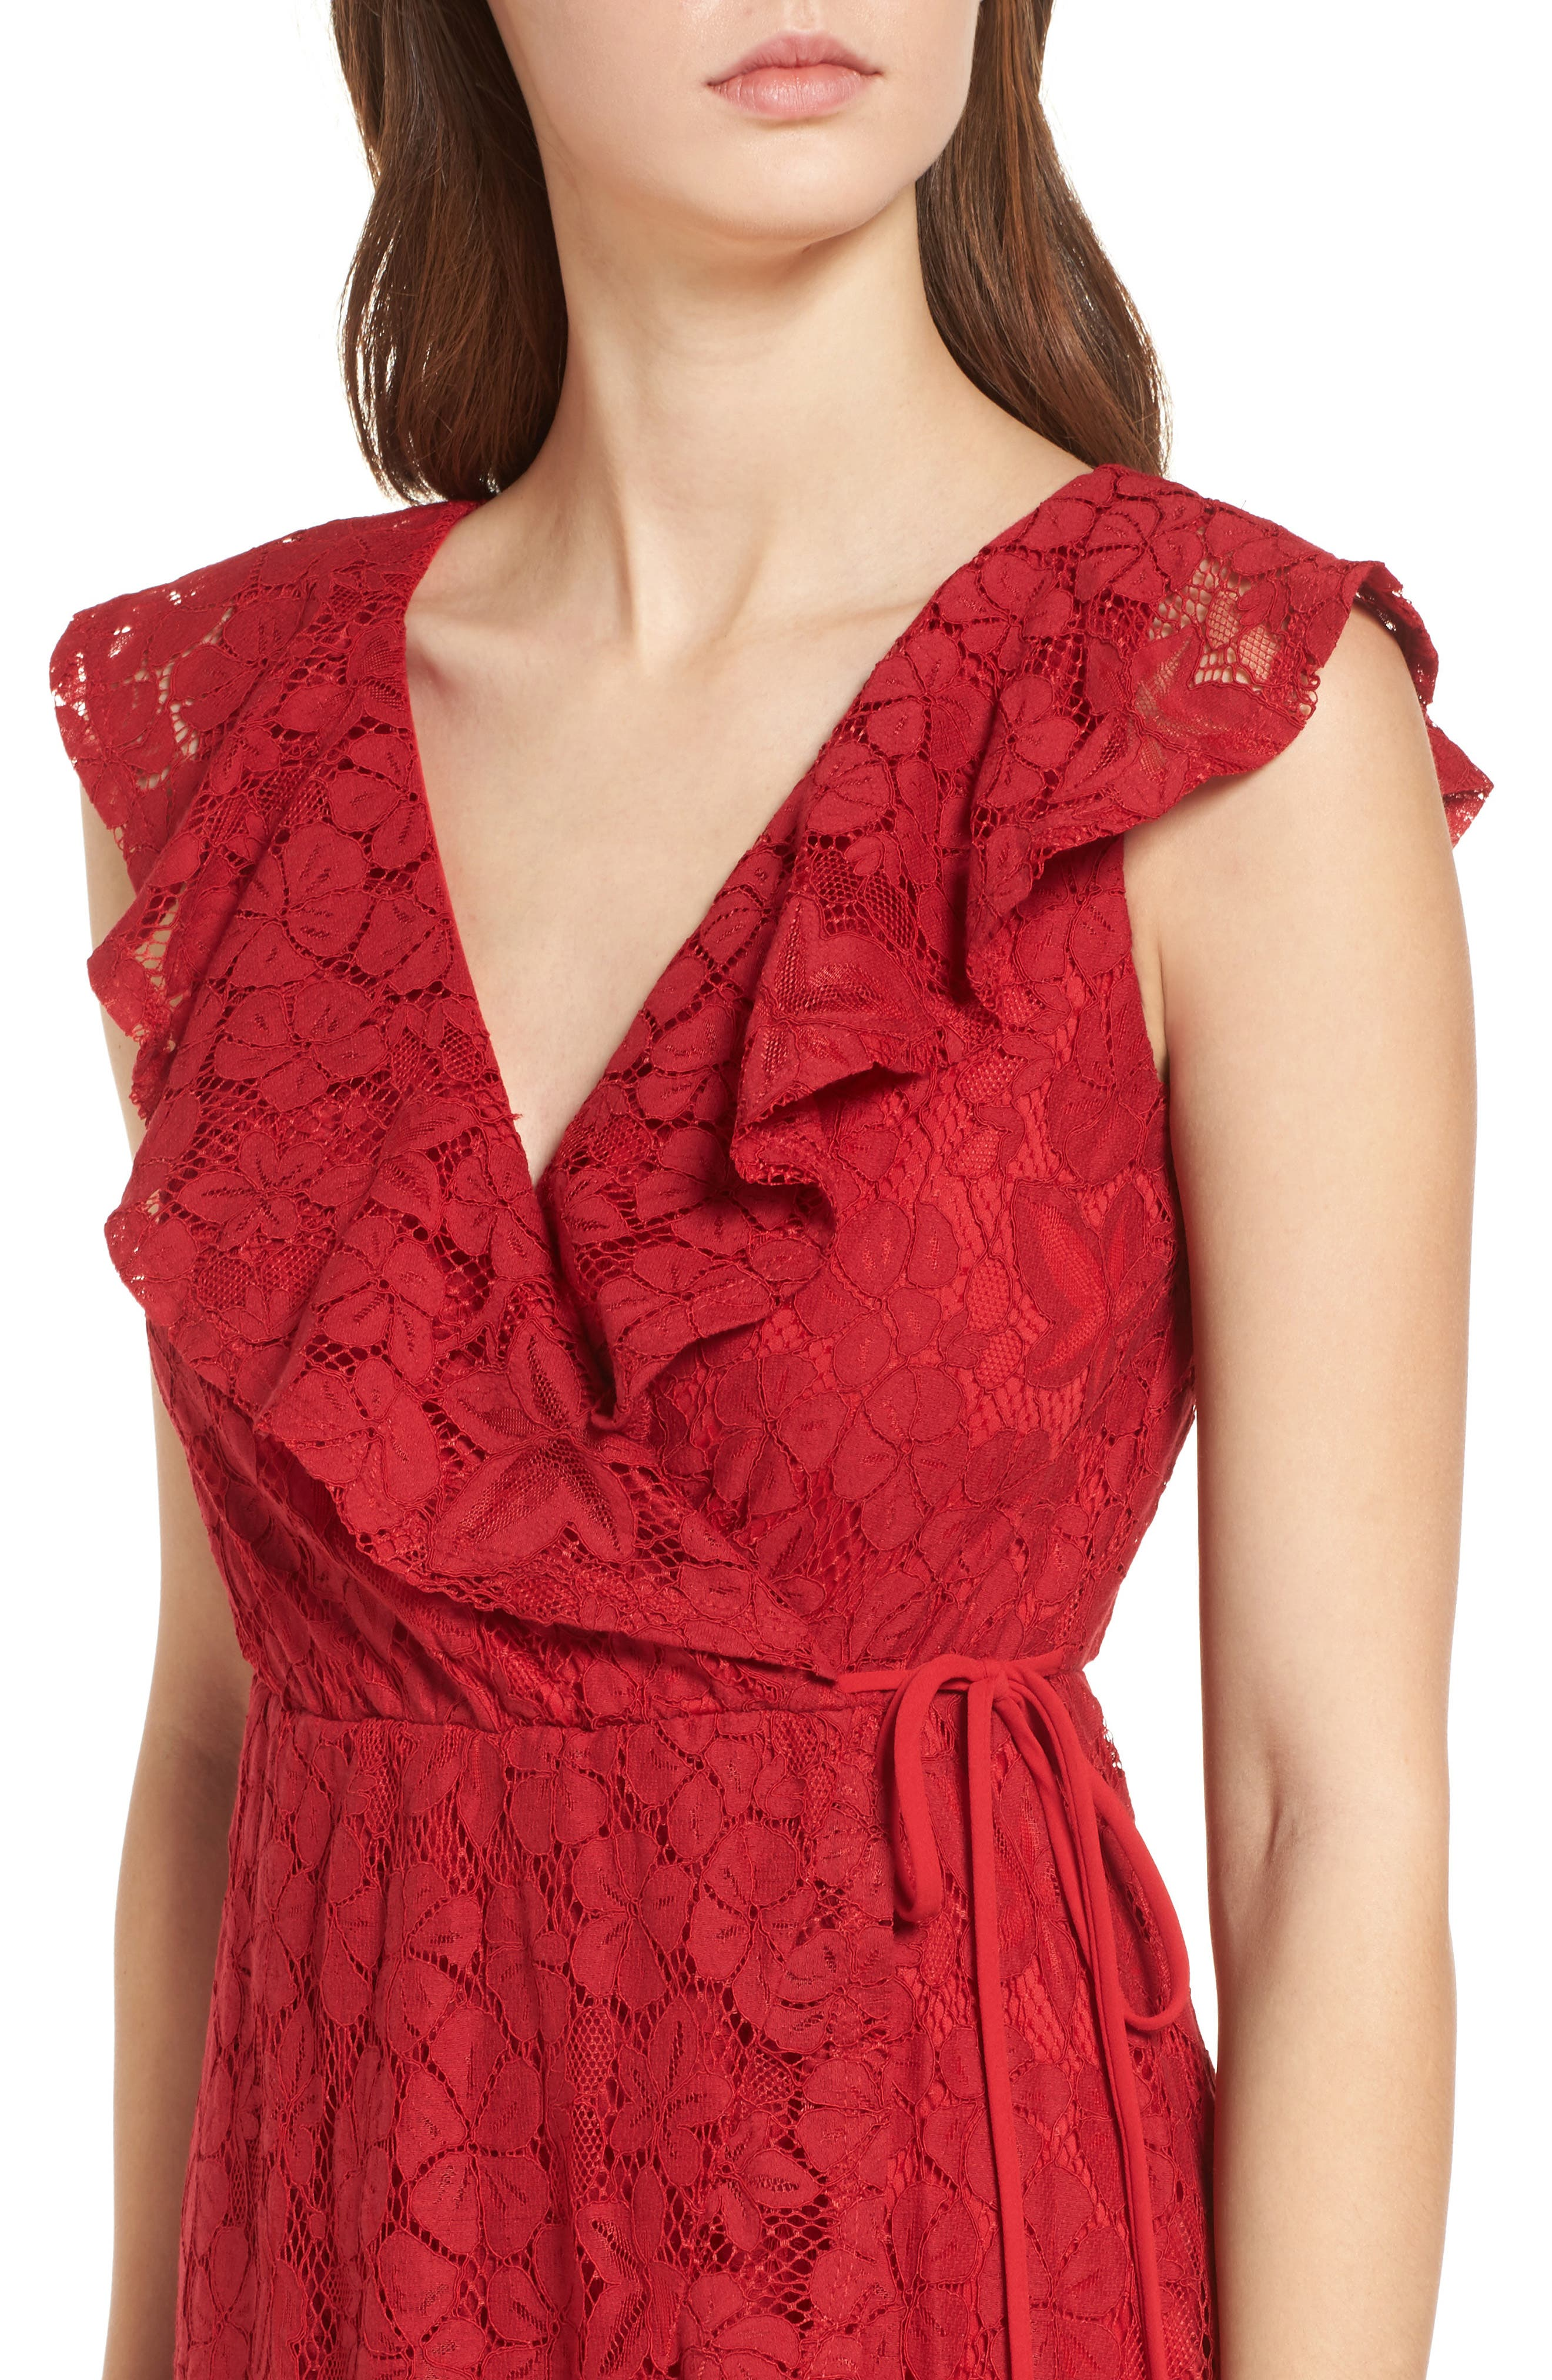 Ruffle Lace Wrap Dress,                             Alternate thumbnail 4, color,                             Red